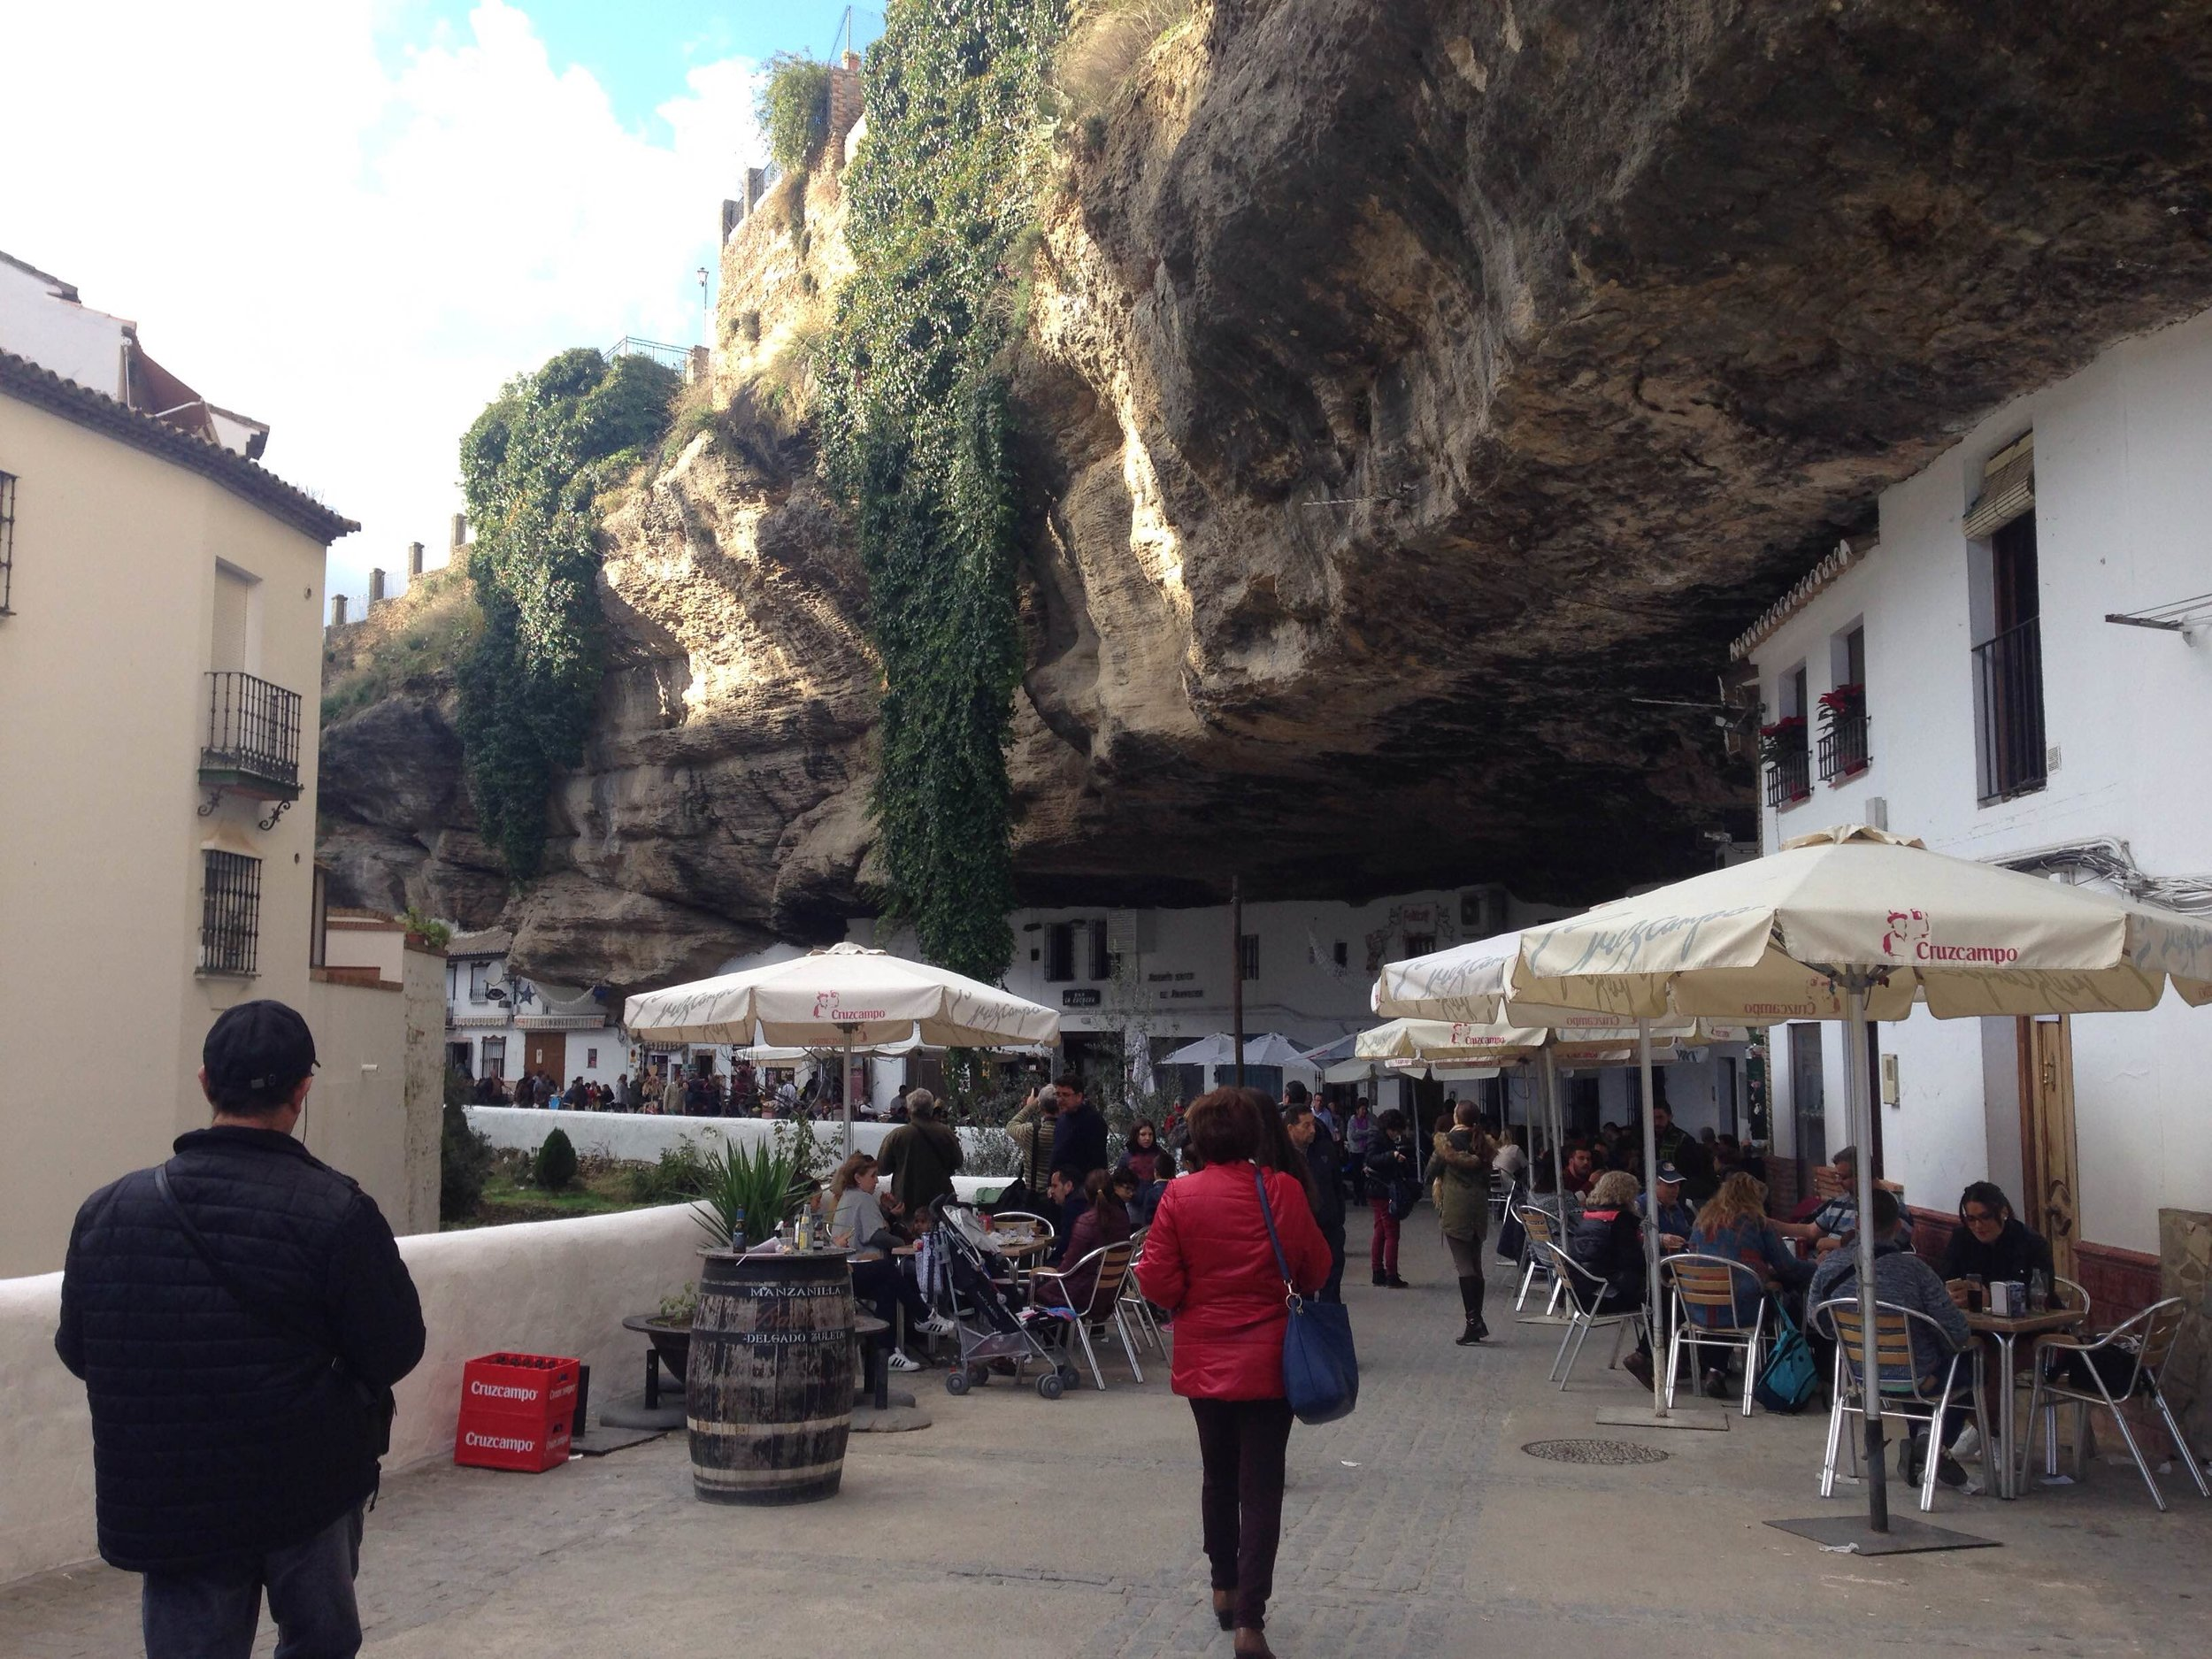 Setenil has two sides, sol y sombra. This is the Sol side because it gets more light during the day.